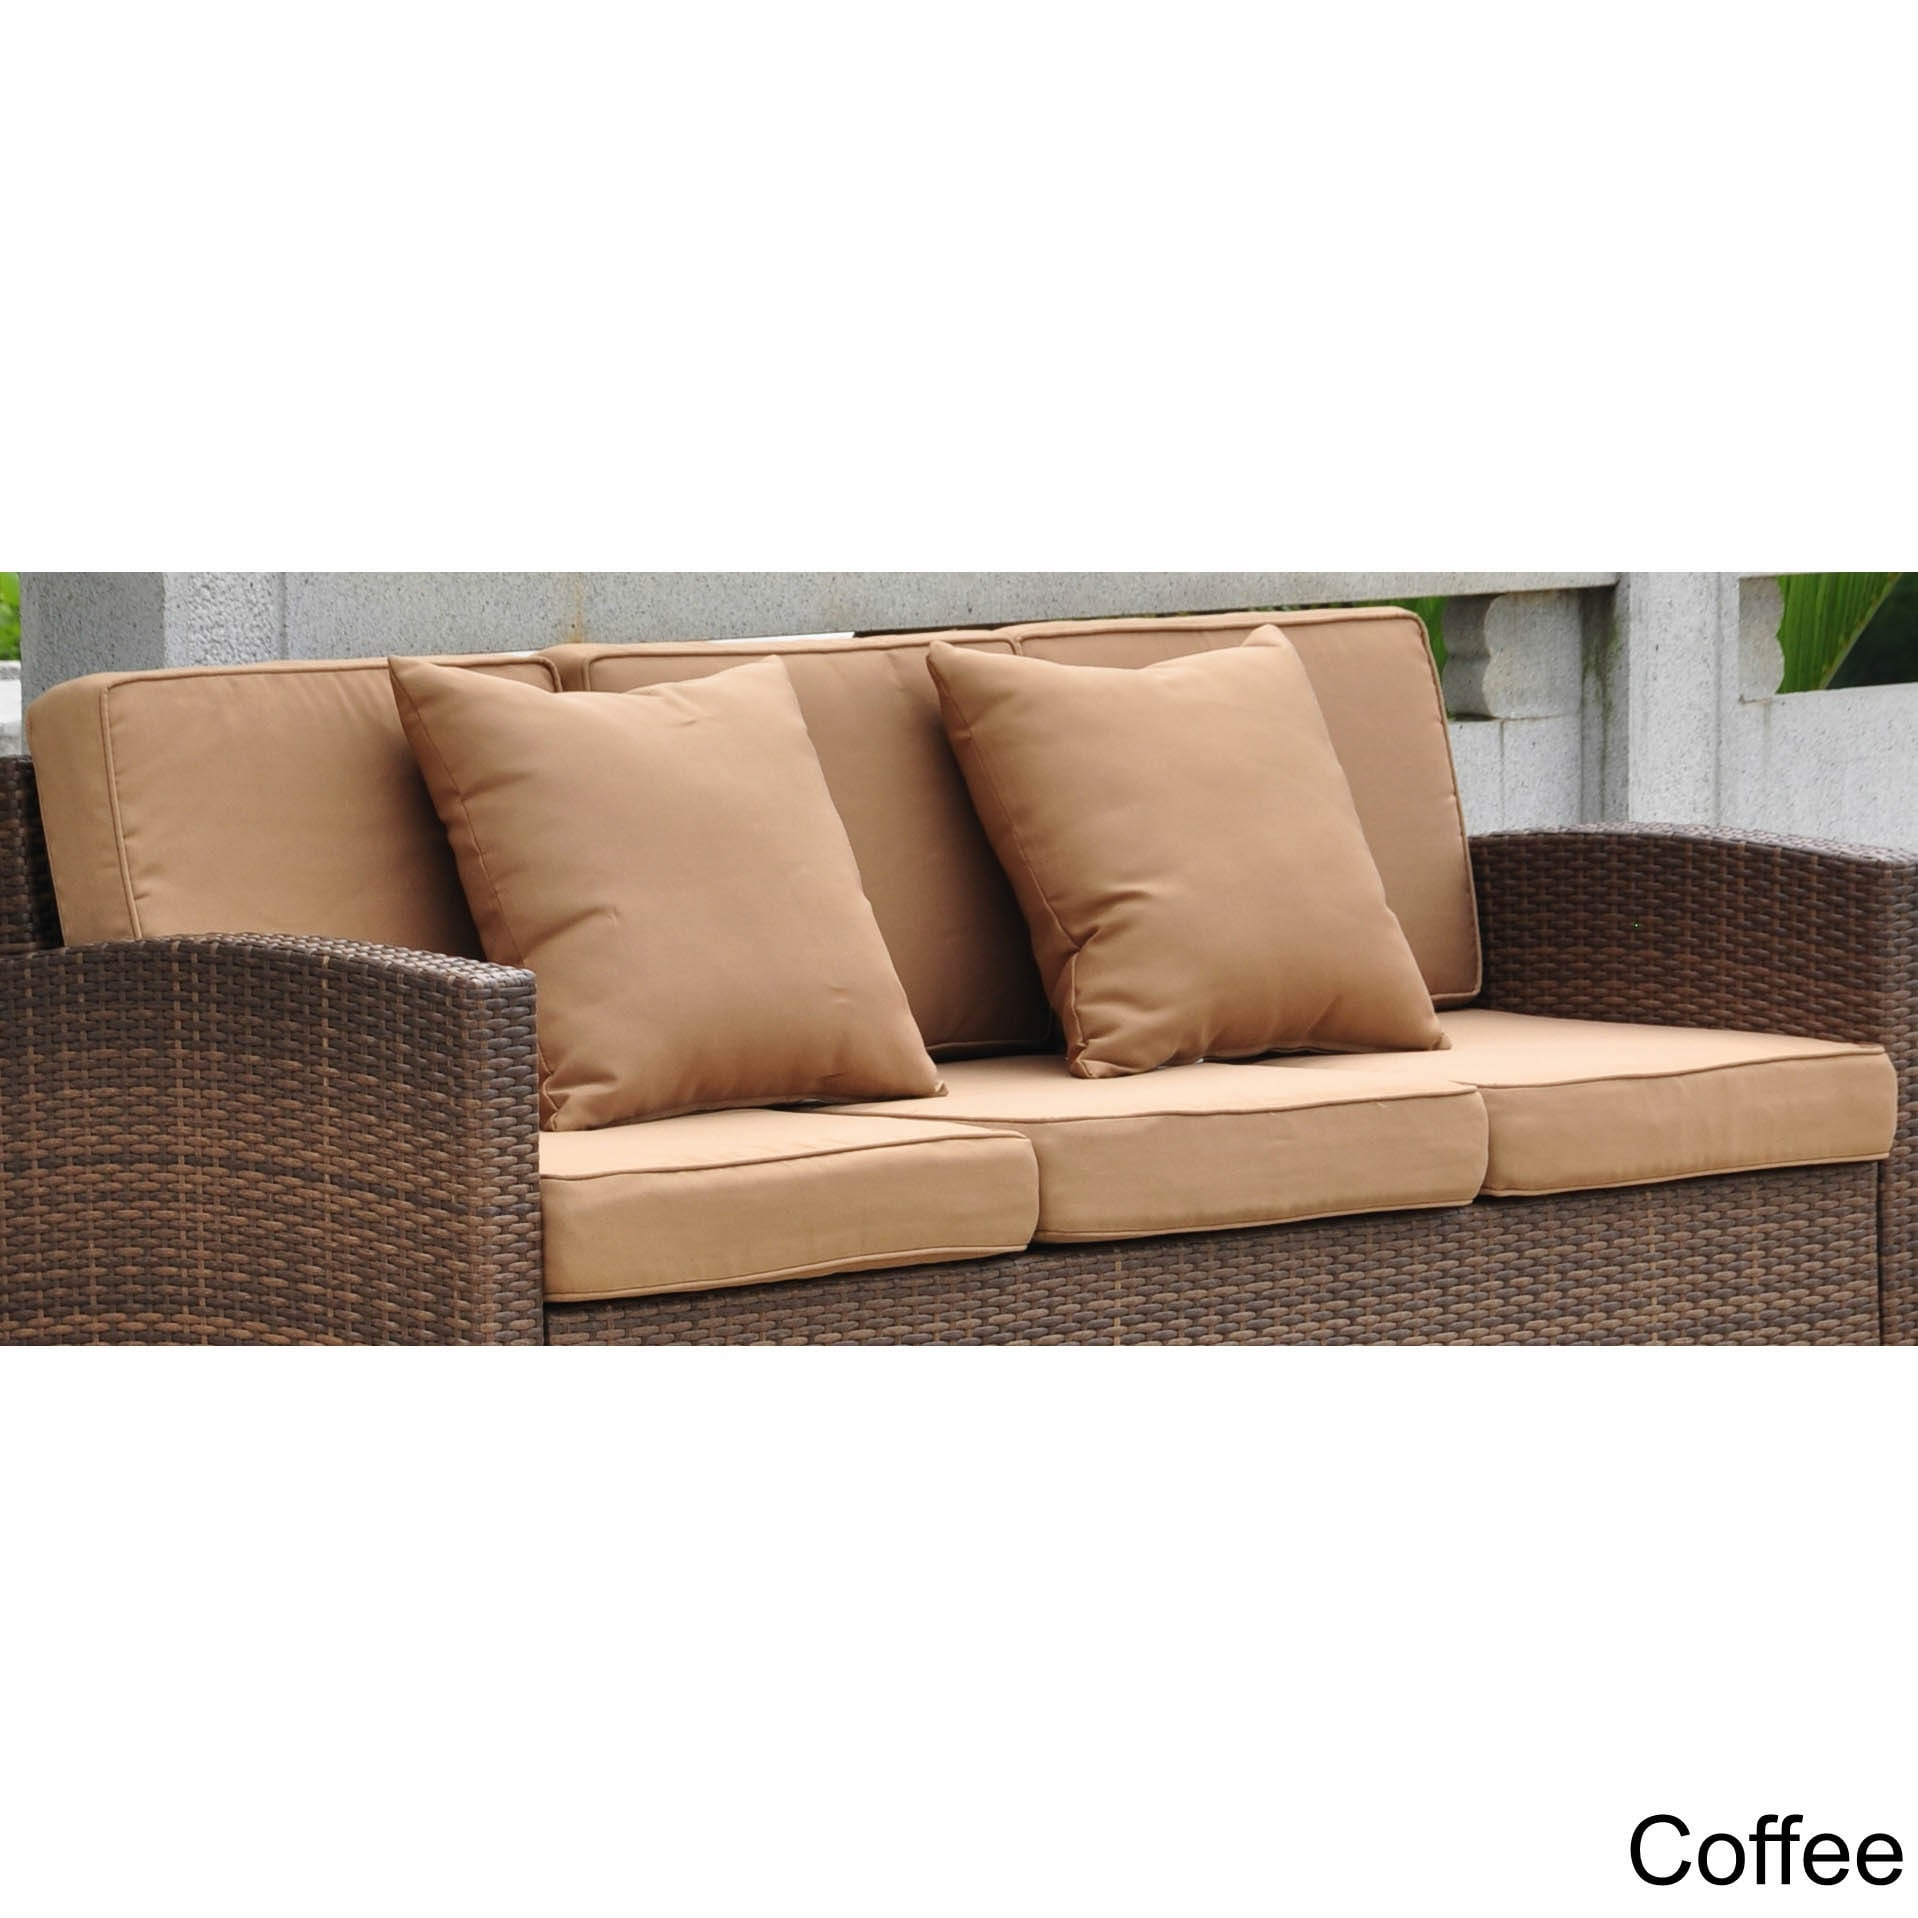 International Caravan Corded Replacement Cushions And Pillows For Barcelona Sofa Set Of 8 On Free Shipping Today 10062656